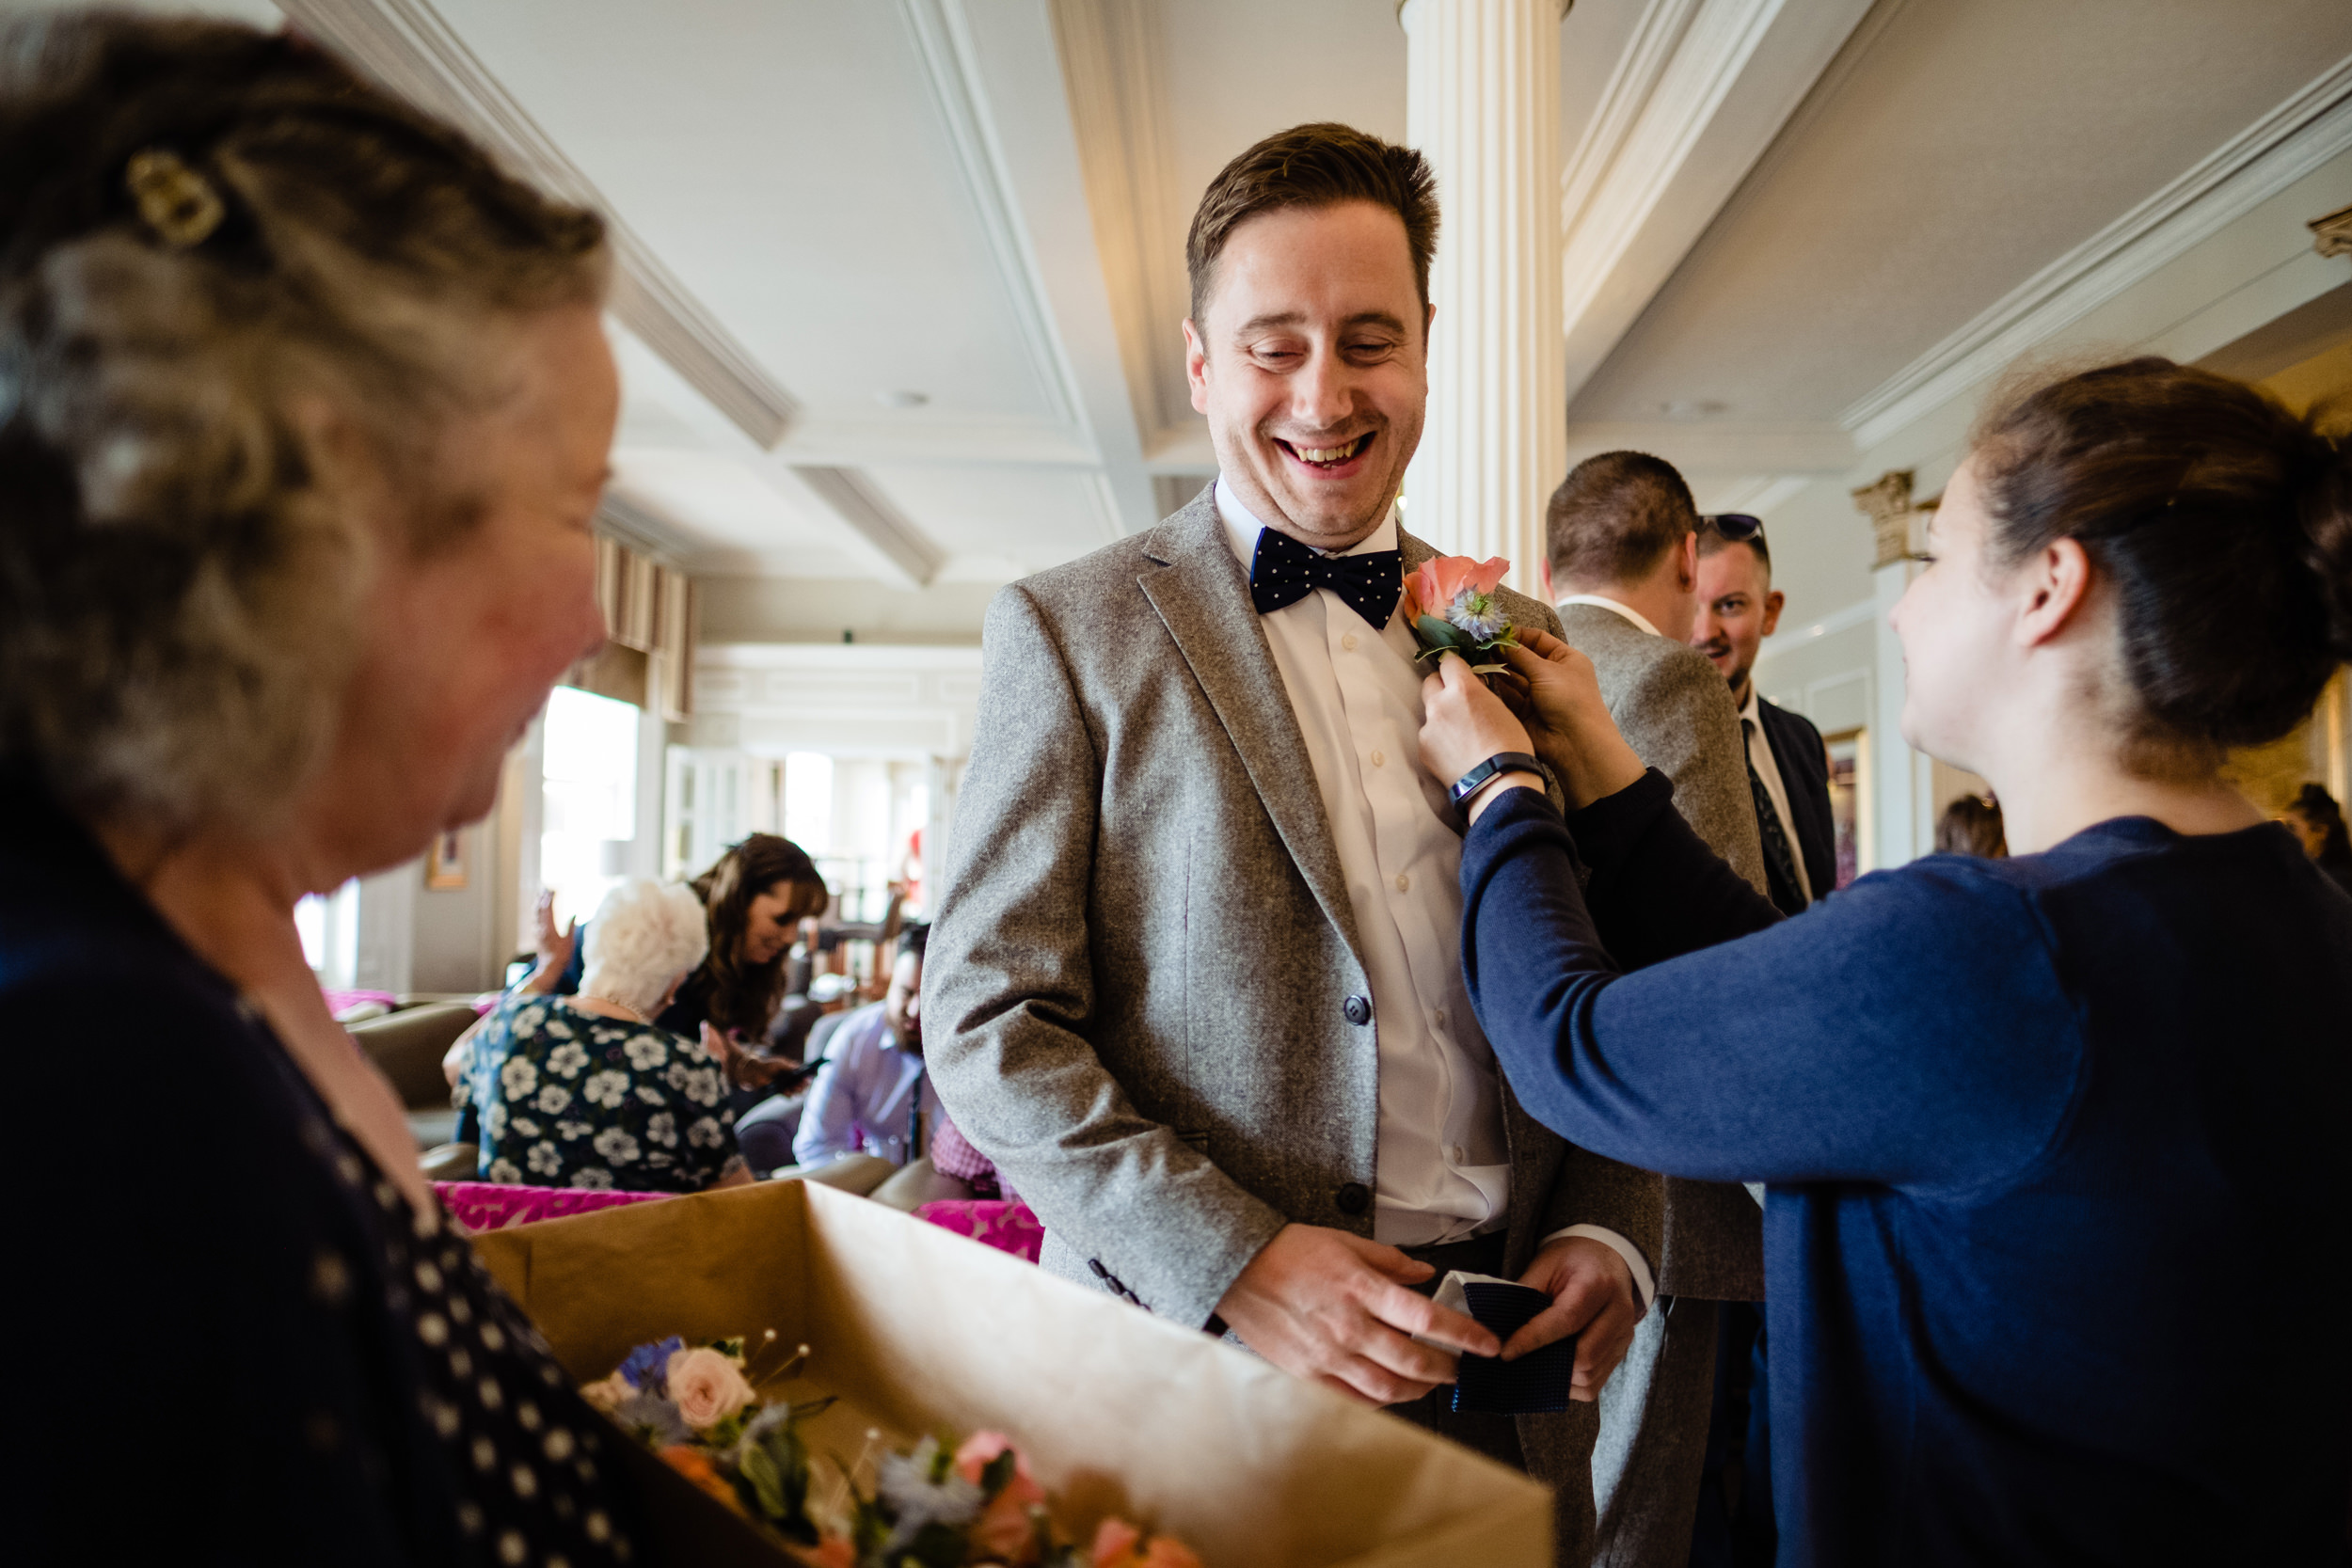 groom getting his buttonhole flower fitted. wildwood and eden wedding photography by emma and rich.